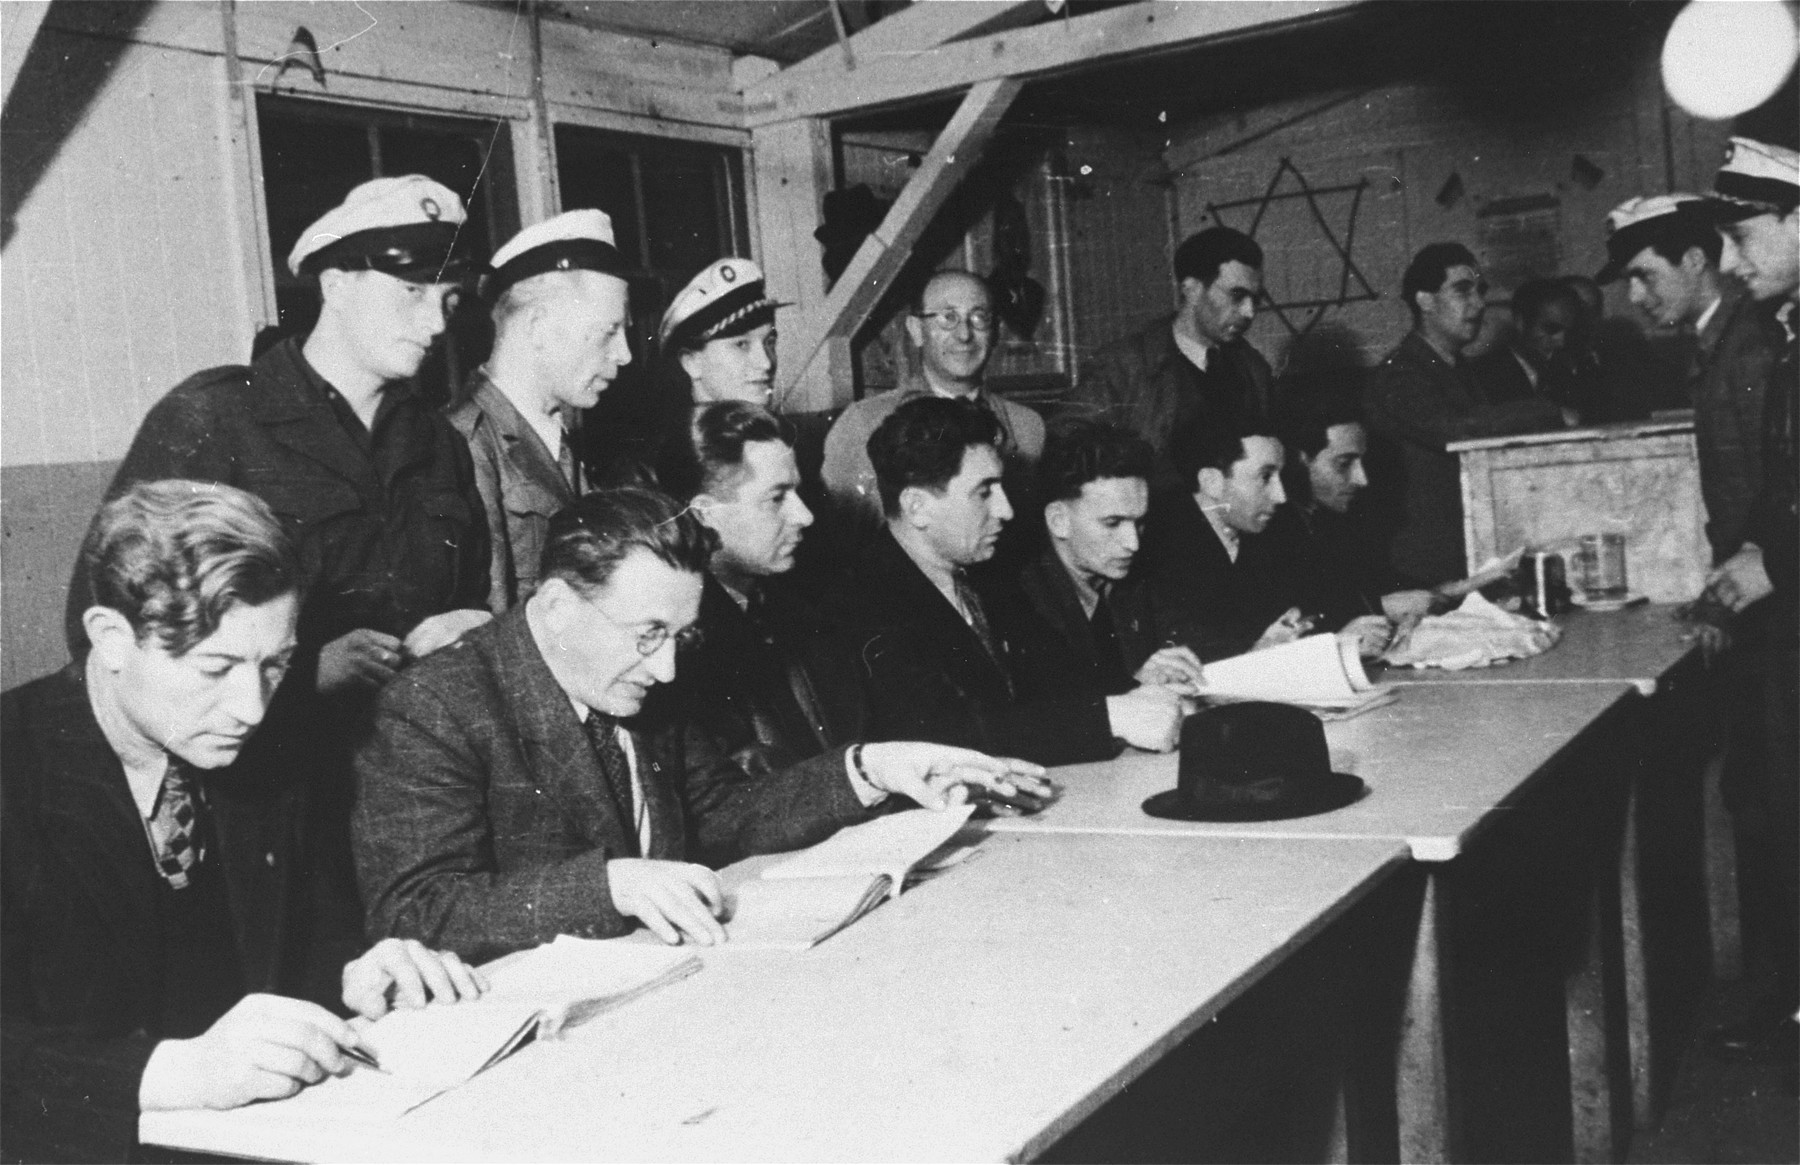 Jewish police supervise the work of the electing committee during elections in the Zeilsheim displaced persons' camp.